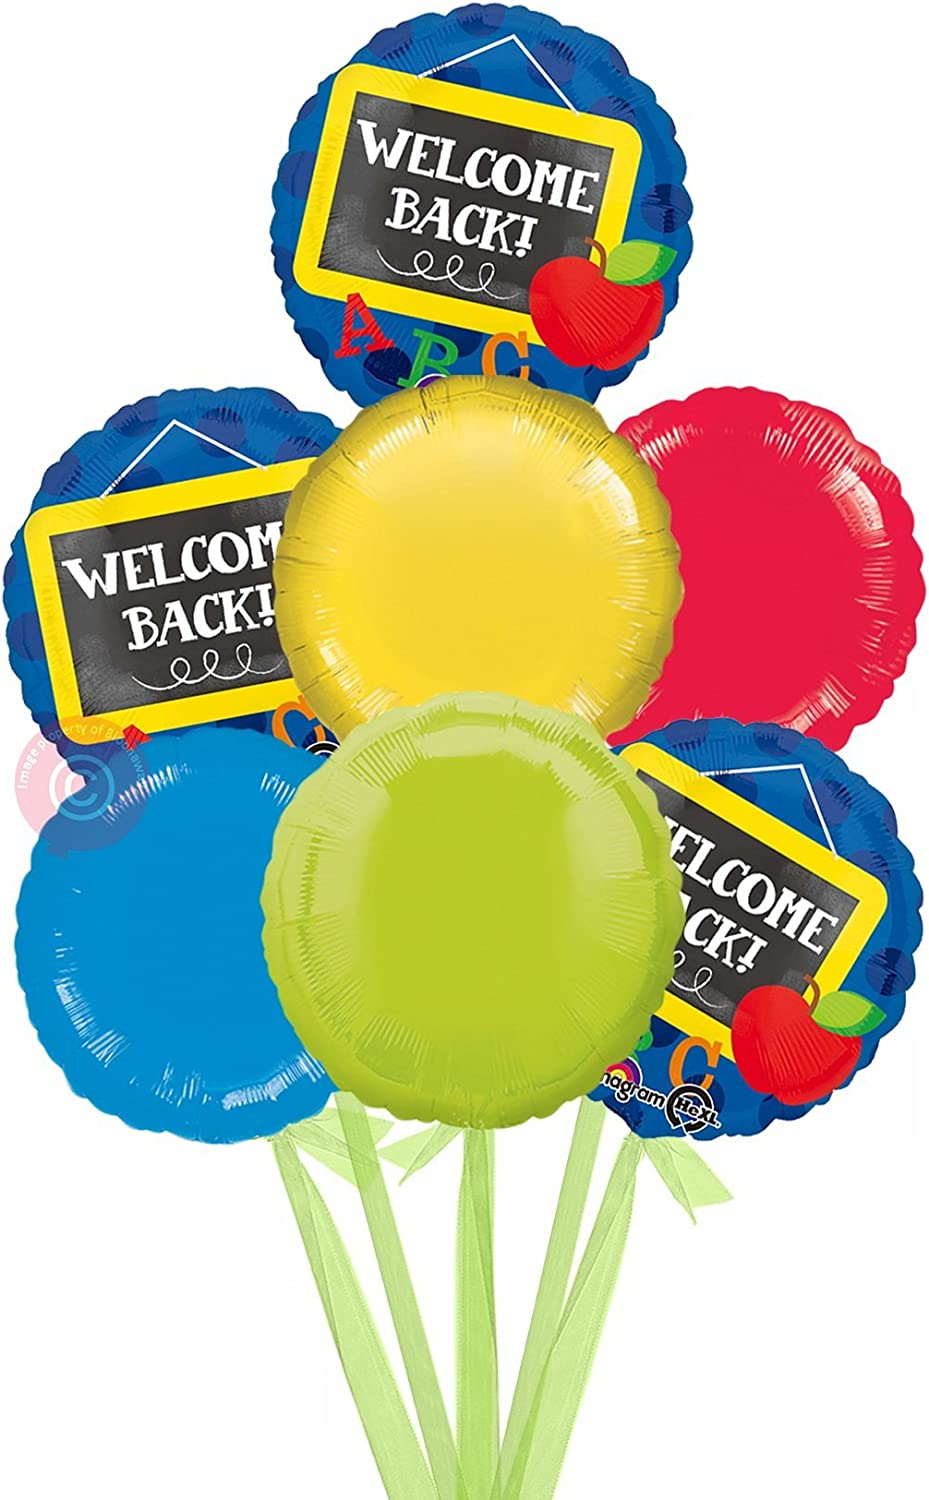 Welcome Back to School  Inflated Welcome Helium Balloon Delivered in a Box  Bigger Bouquet  7 Balloons  Bloonaway